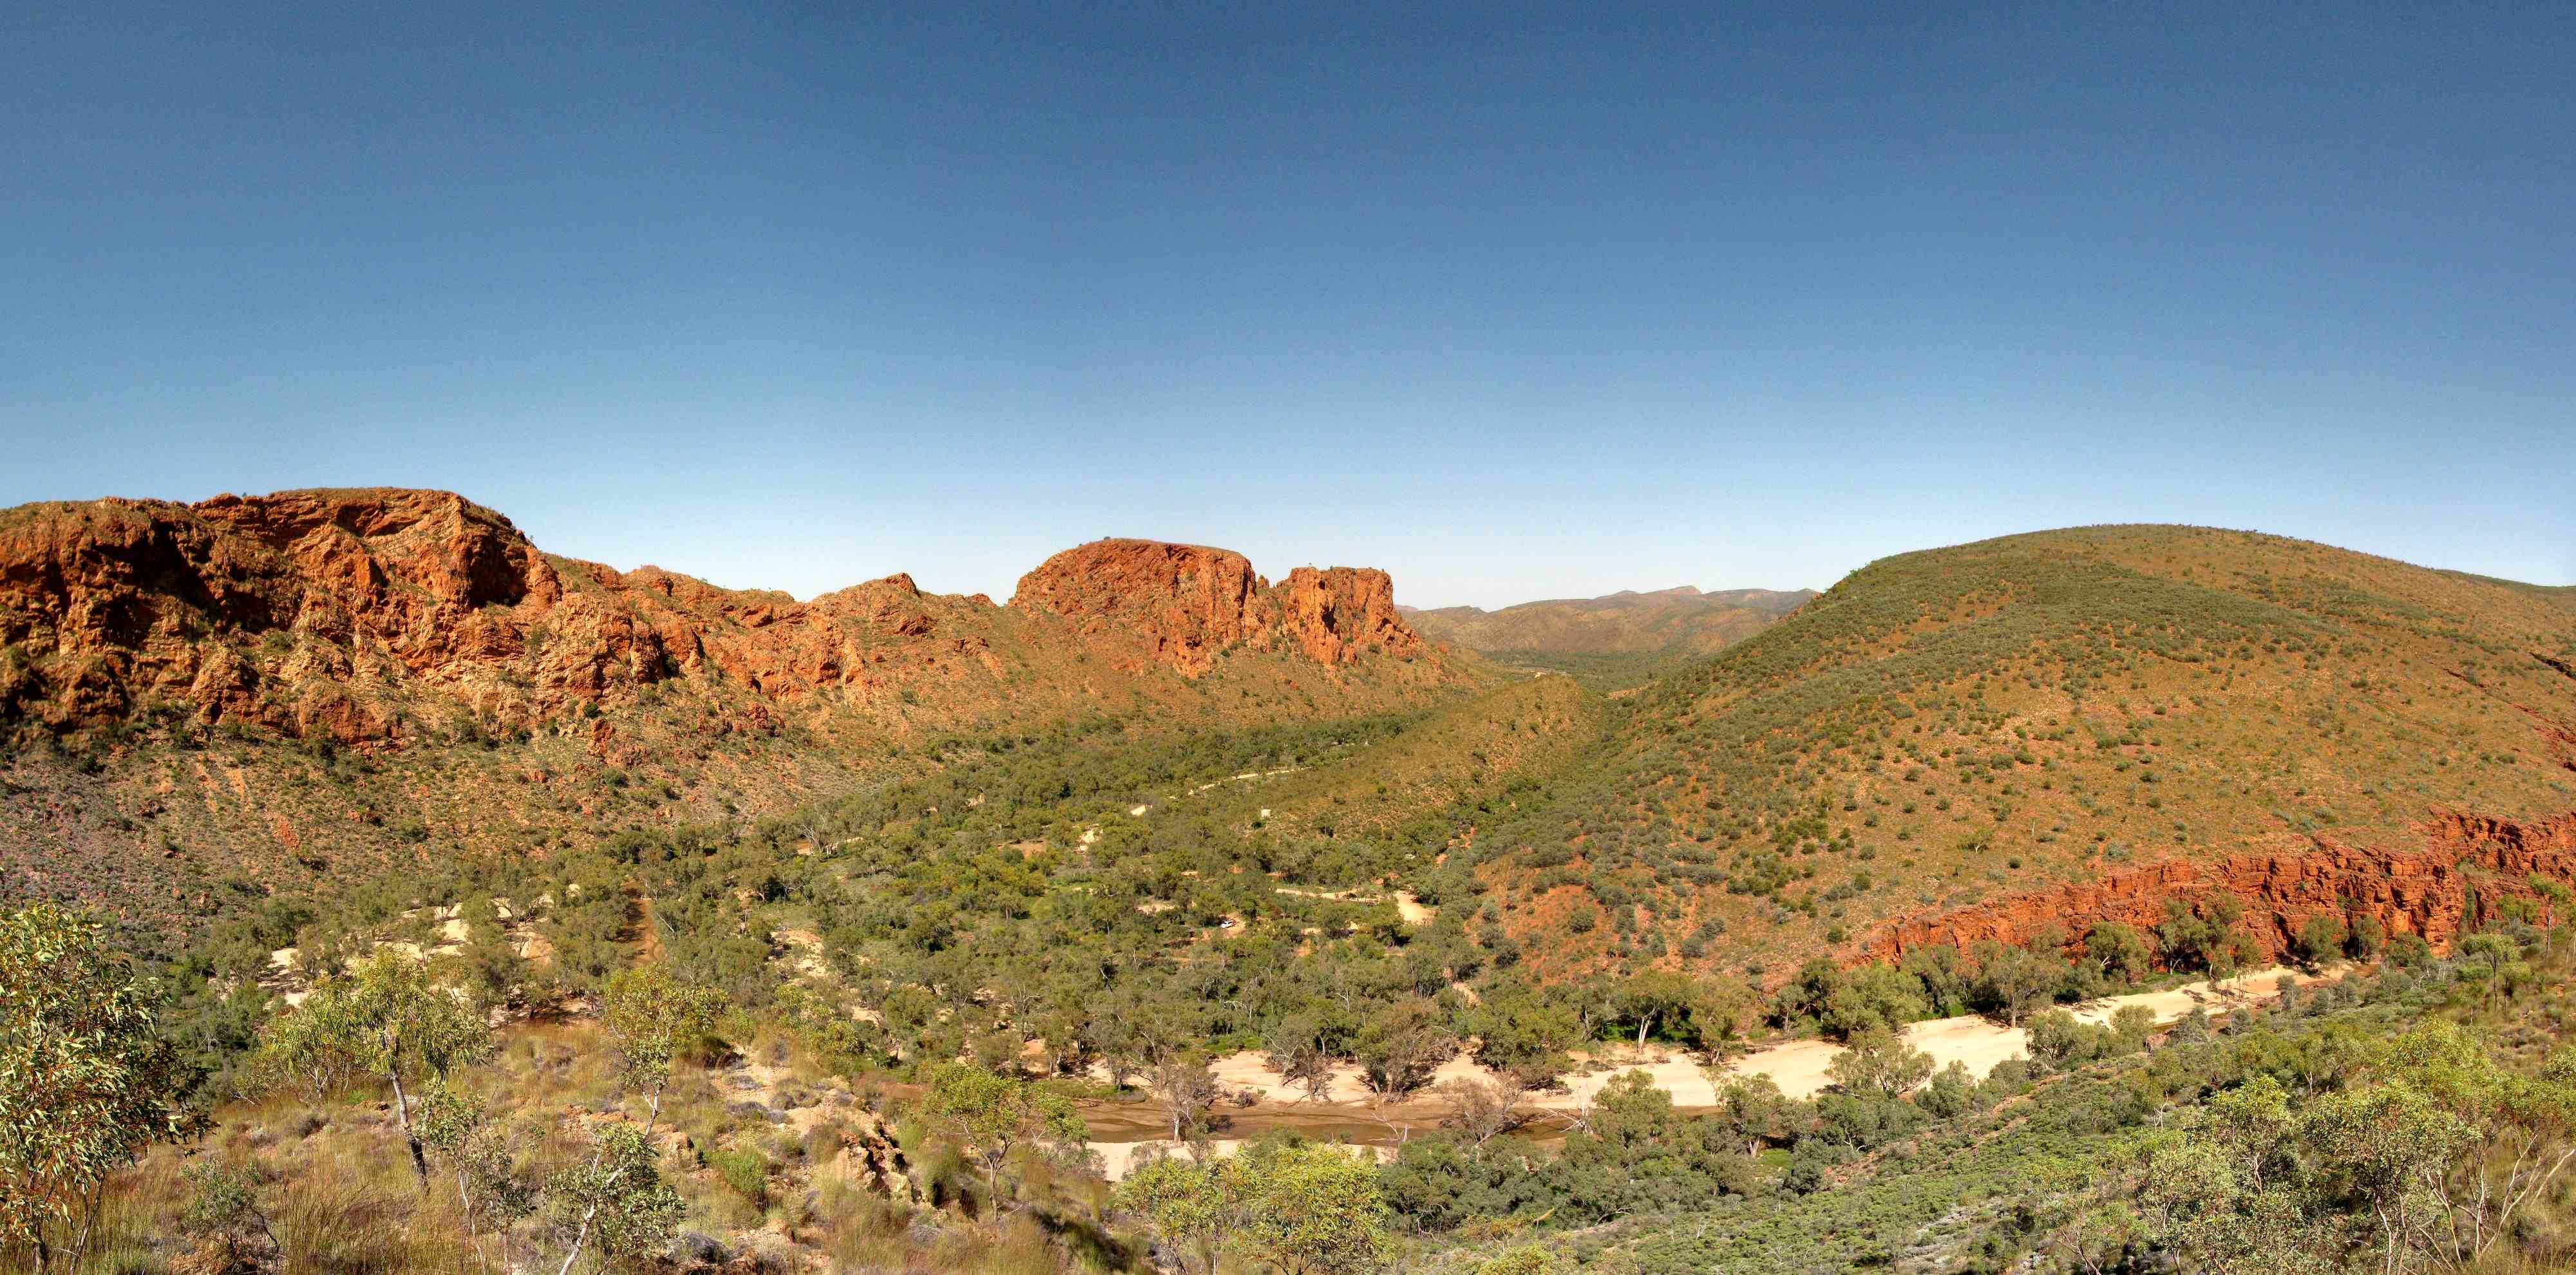 2010.09.27 panorama track view of trephina gorge national park